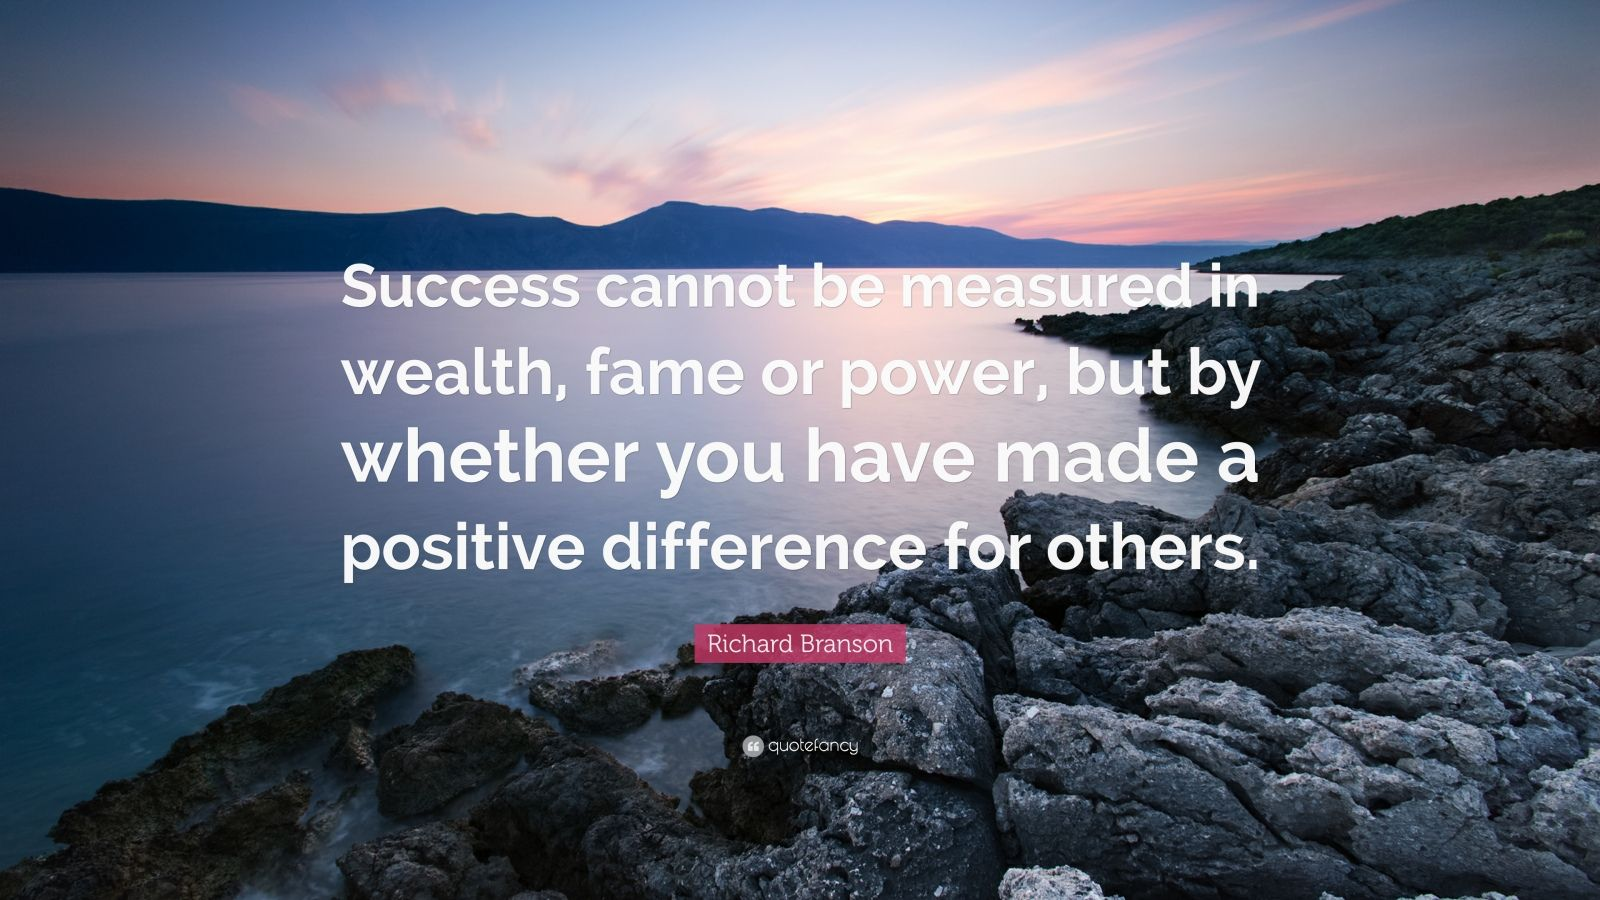 "Richard Branson Quote: ""Success cannot be measured in wealth, fame or power, but by whether you have made a positive difference for others."""